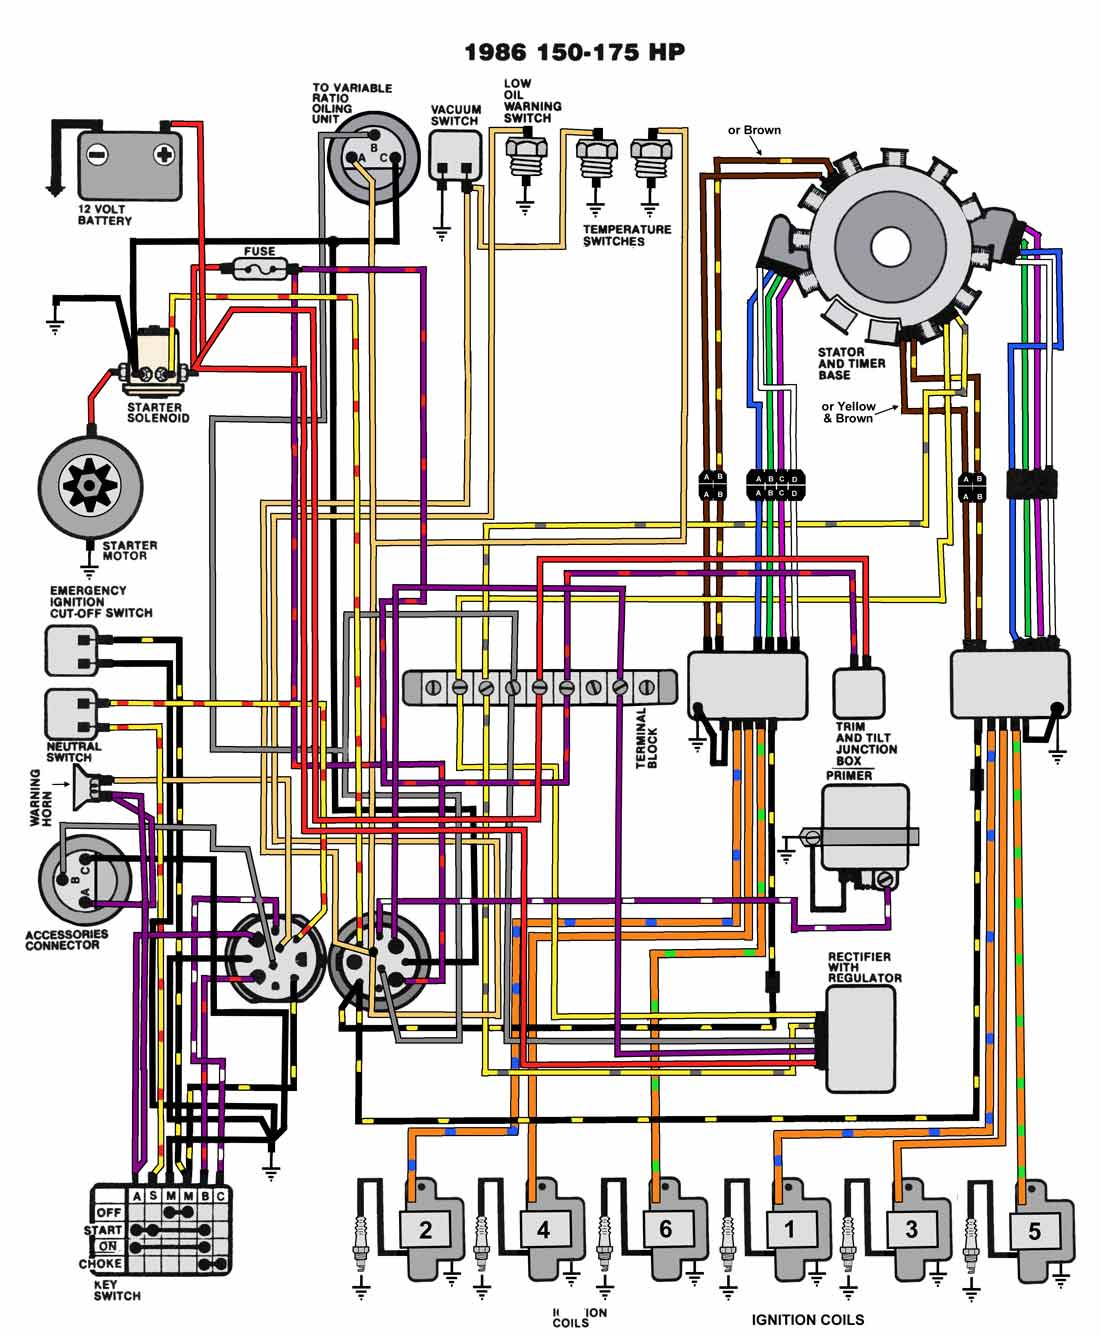 1986_150_175 1993 evirude 50 wiring diagram electronic circuit diagrams johnson outboard wiring schematic at crackthecode.co